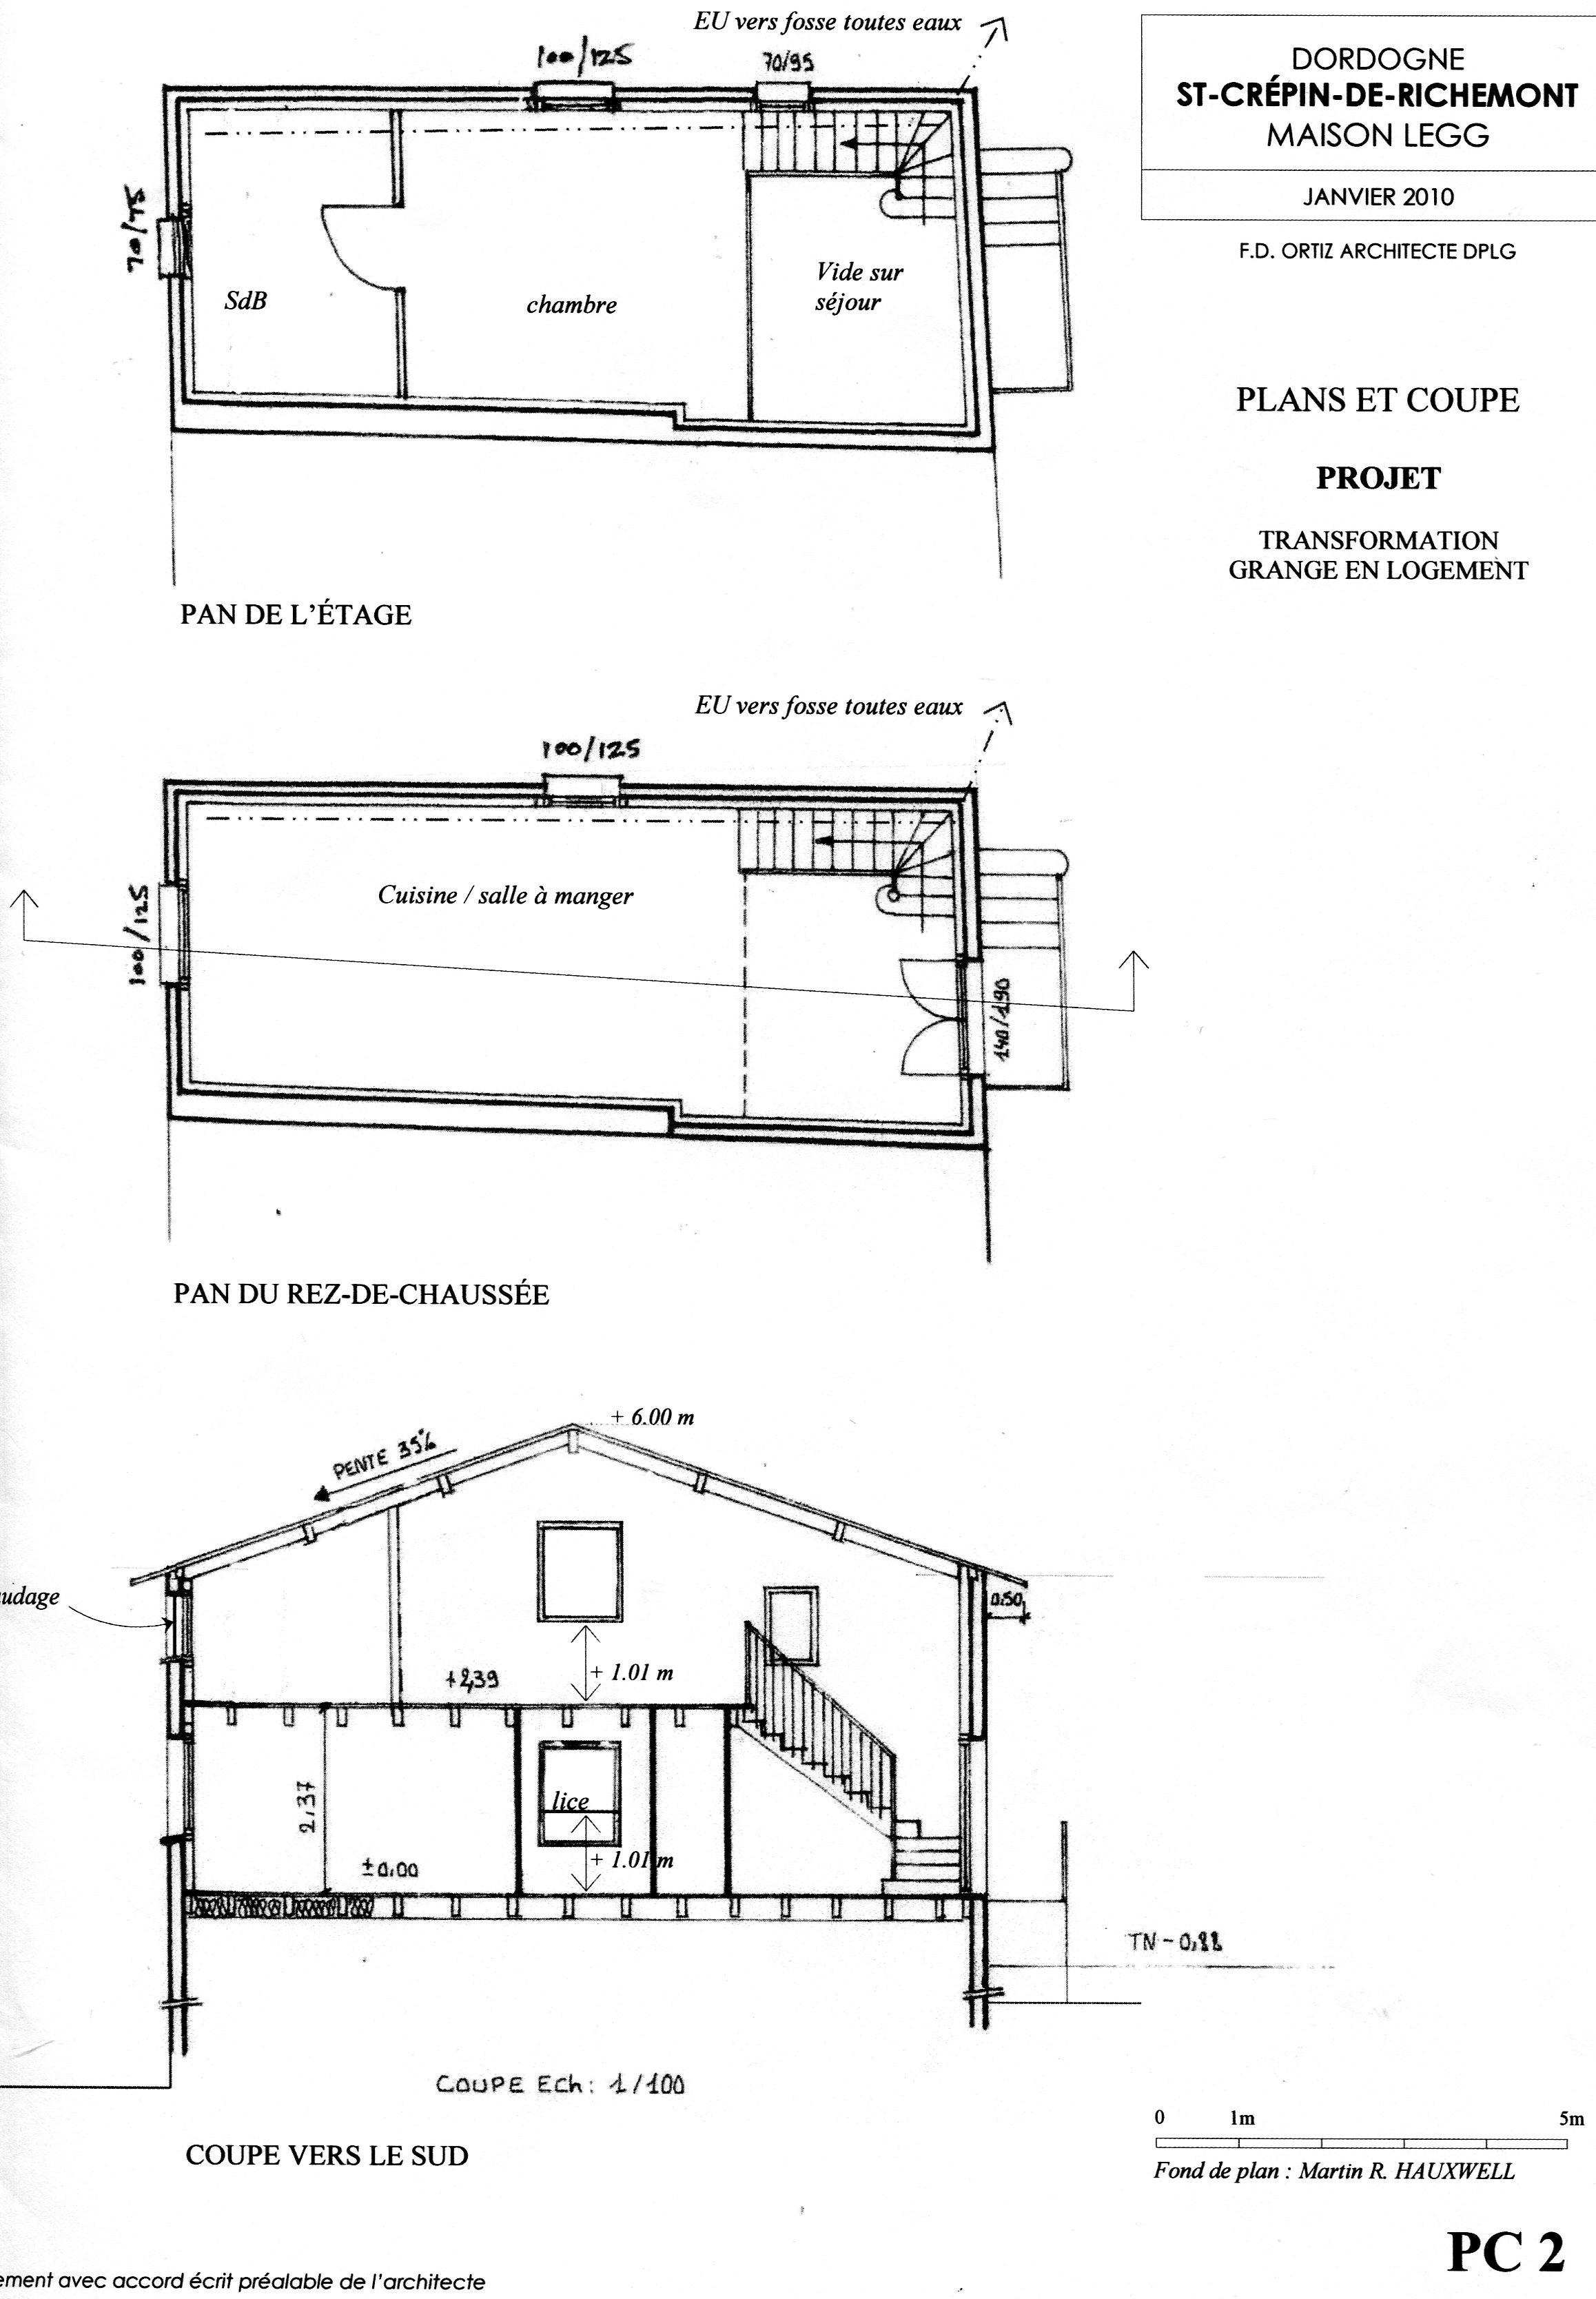 Barn - outline plans for development